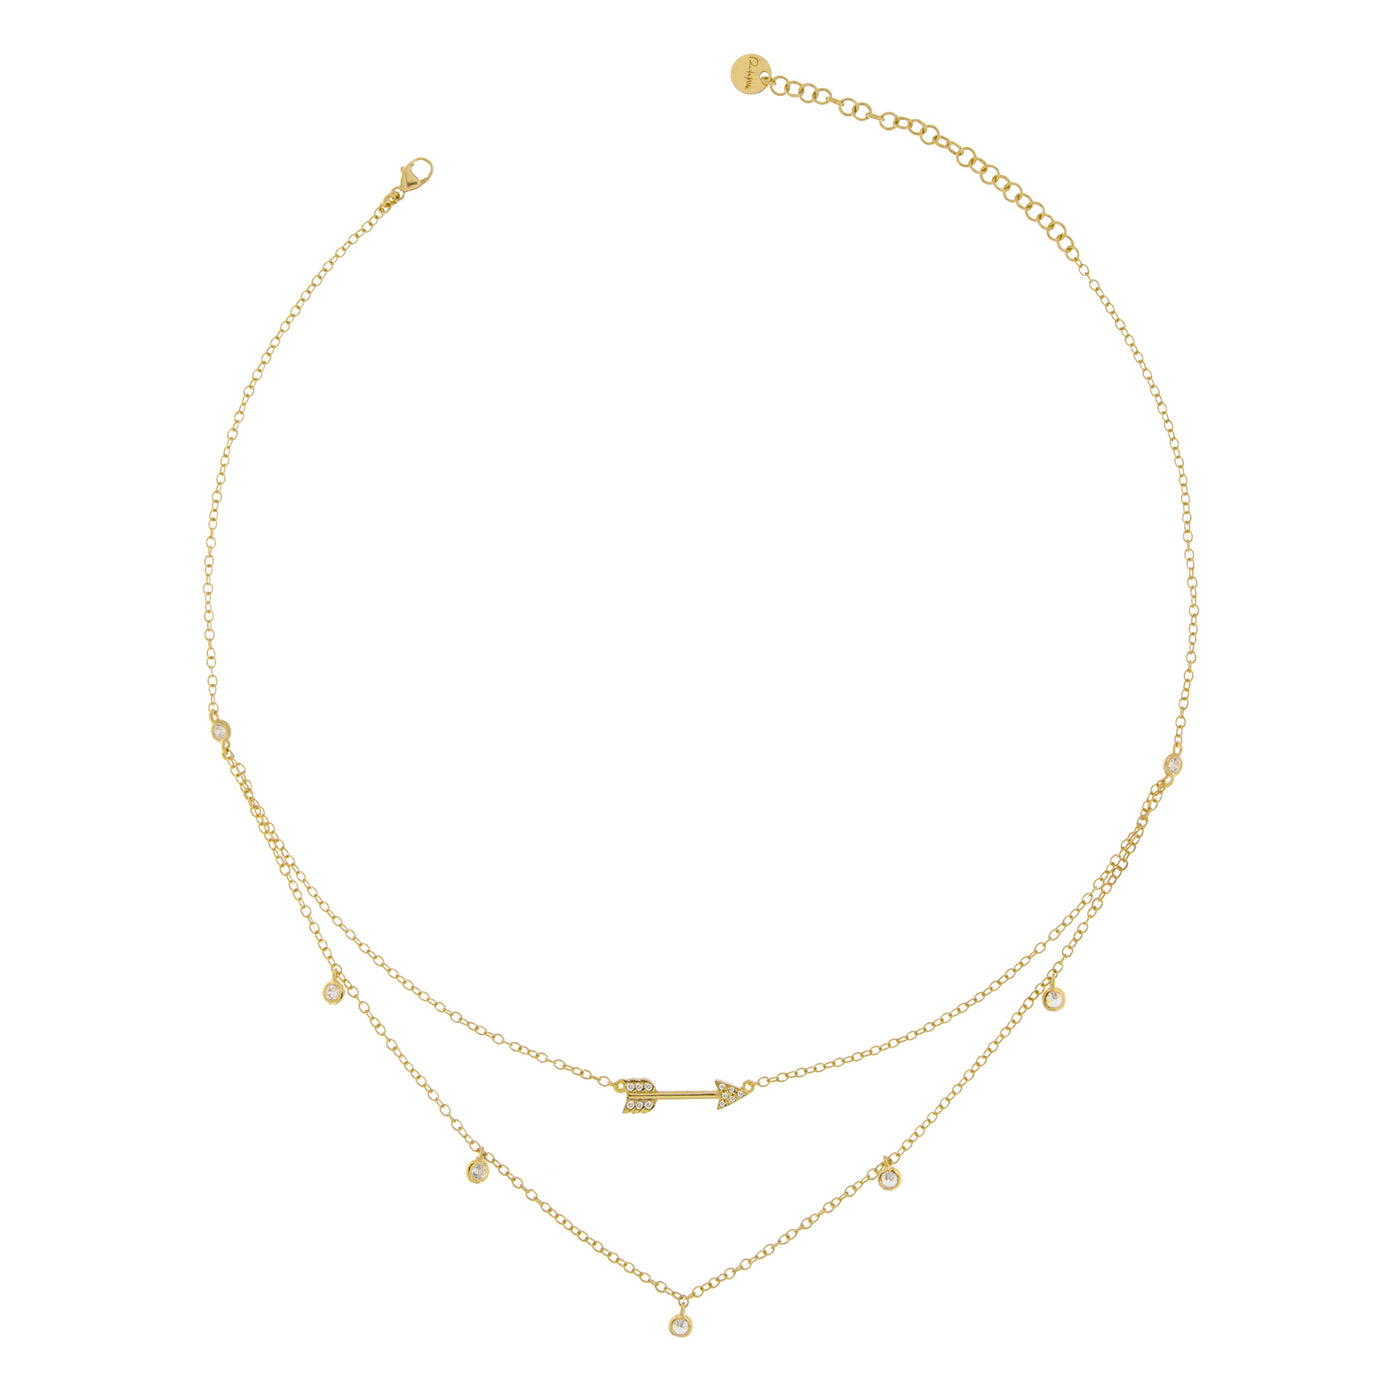 Chokers - Necklace Double Chain Arrow With Zirconia - 2 | Rue des Mille